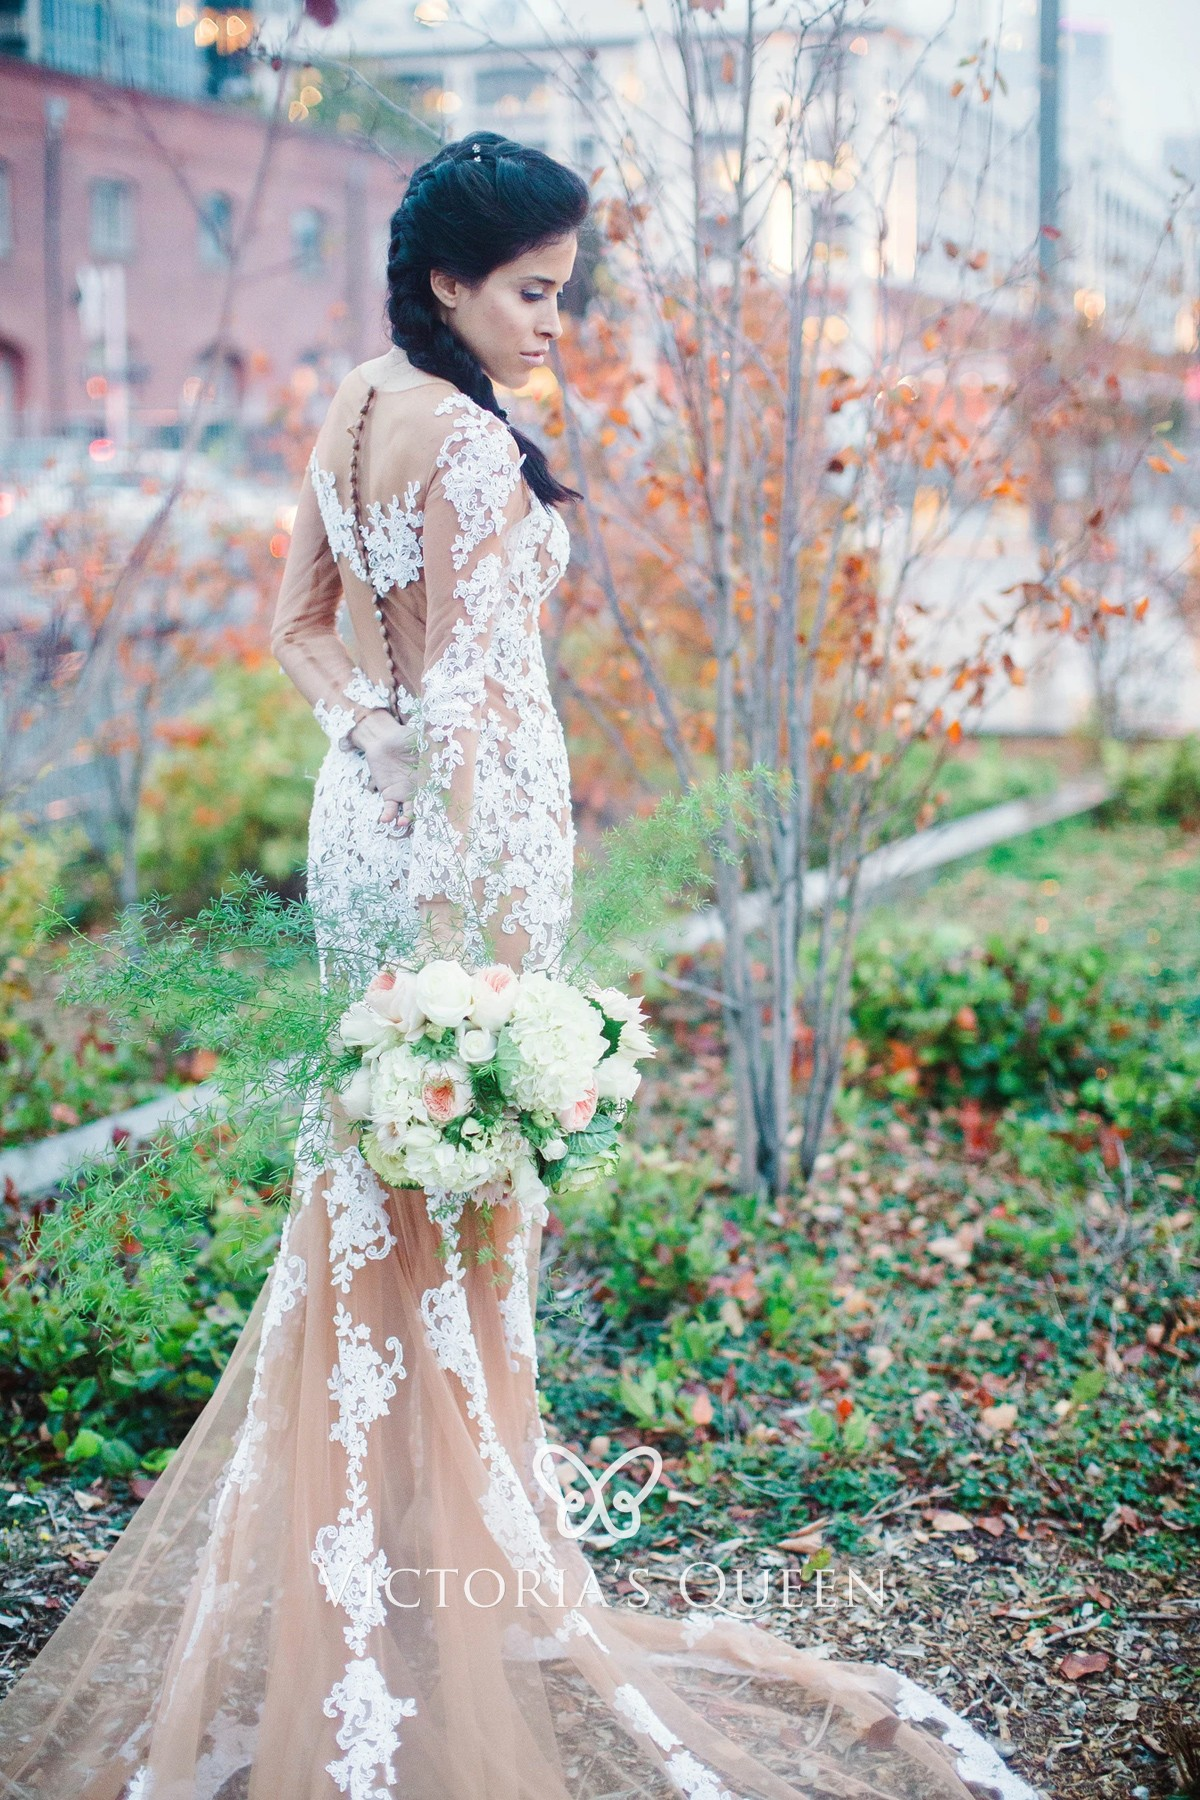 Sheer Nude Tulle with White Lace Mermaid Bridal Gown - VQ